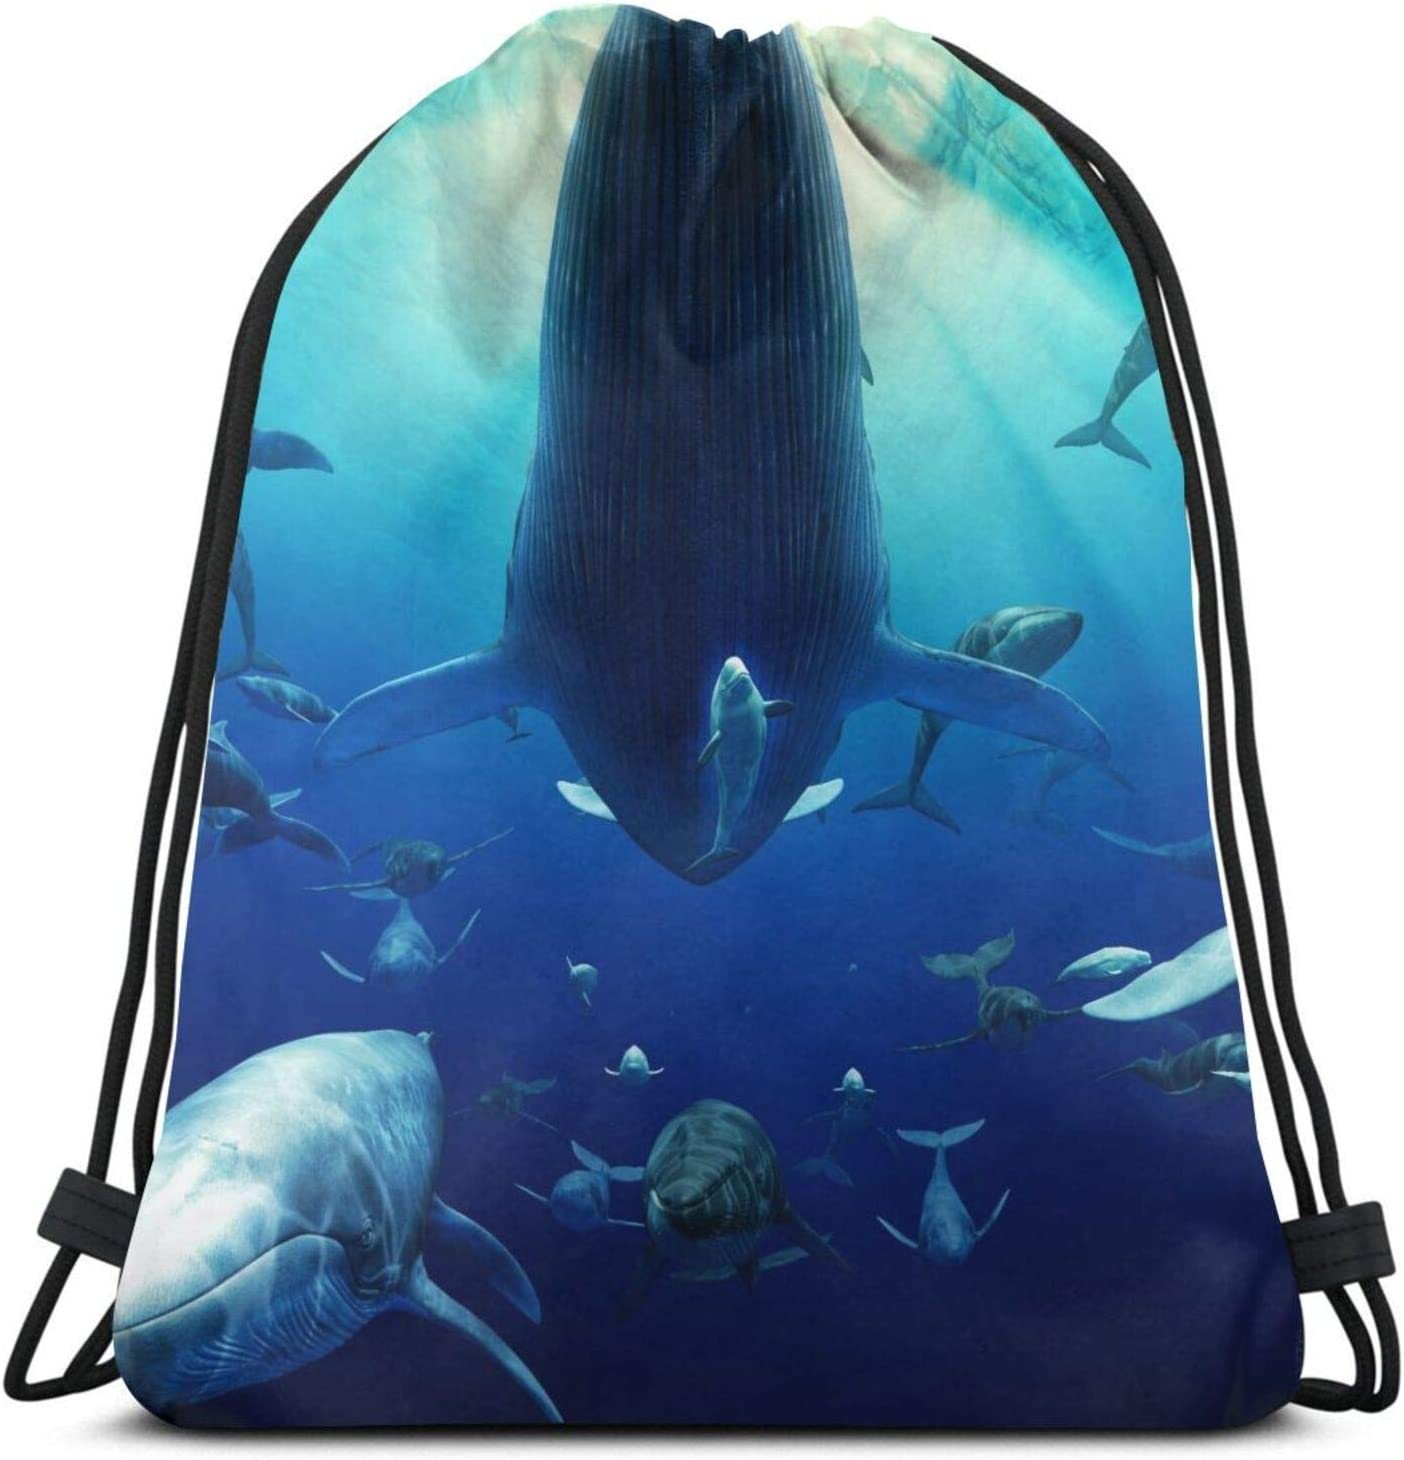 Drawstring Max 69% Free Shipping New OFF Backpack Bag Ocean Blue Hiking Shark Whale Travel